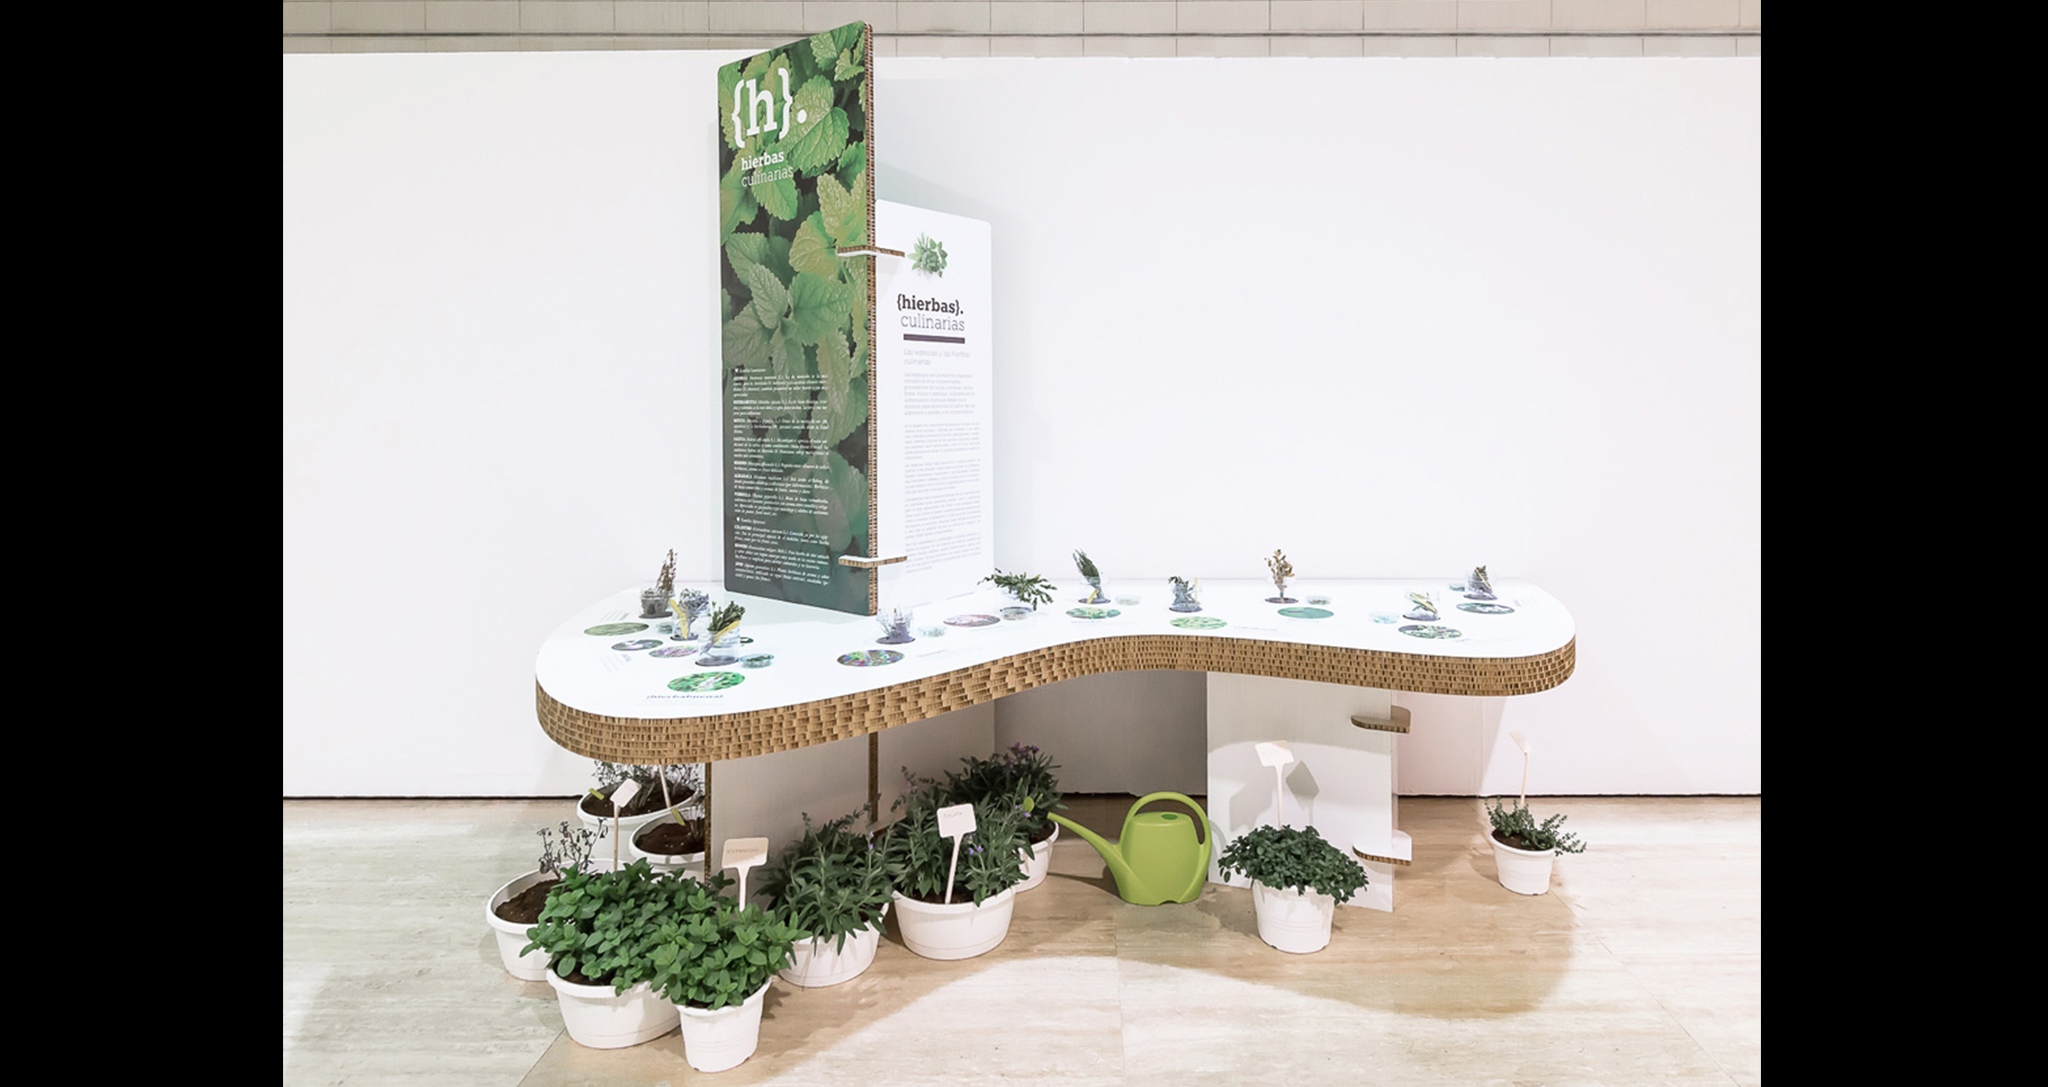 DESIGN TRAVELLING EXHIBITION SPICES THE WORLD OF TASTE BY CARMENCITA CHAIR STUDIES OF GASTRONOMIC TASTE BY ROCAMORA ARCHITECTURE ELCHE ALICANTE SPAIN